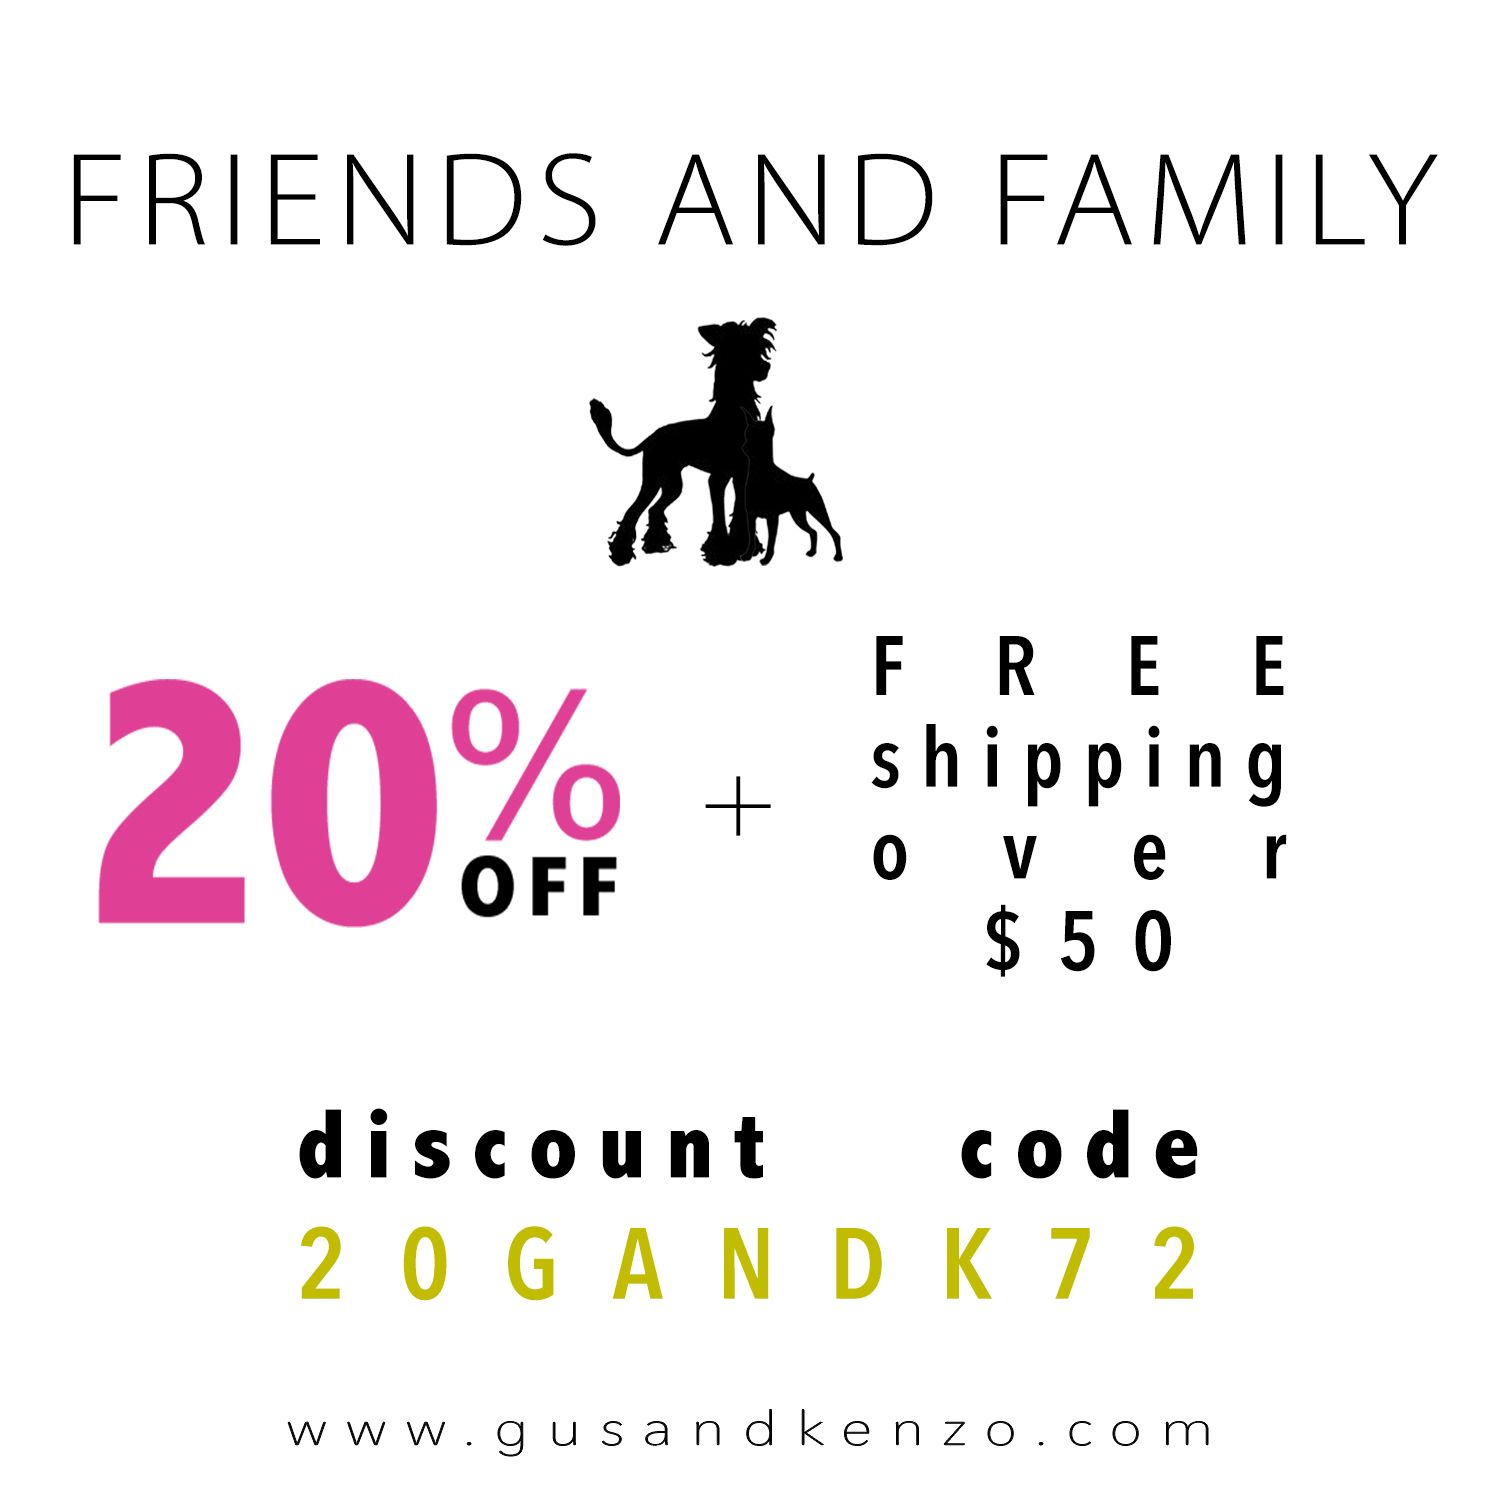 Discount Code Dog Grooming Shampoo Conditioner Dryshampoo Cologne Candle Gusandkenzo Natural Pet Golden Life Pet Grooming